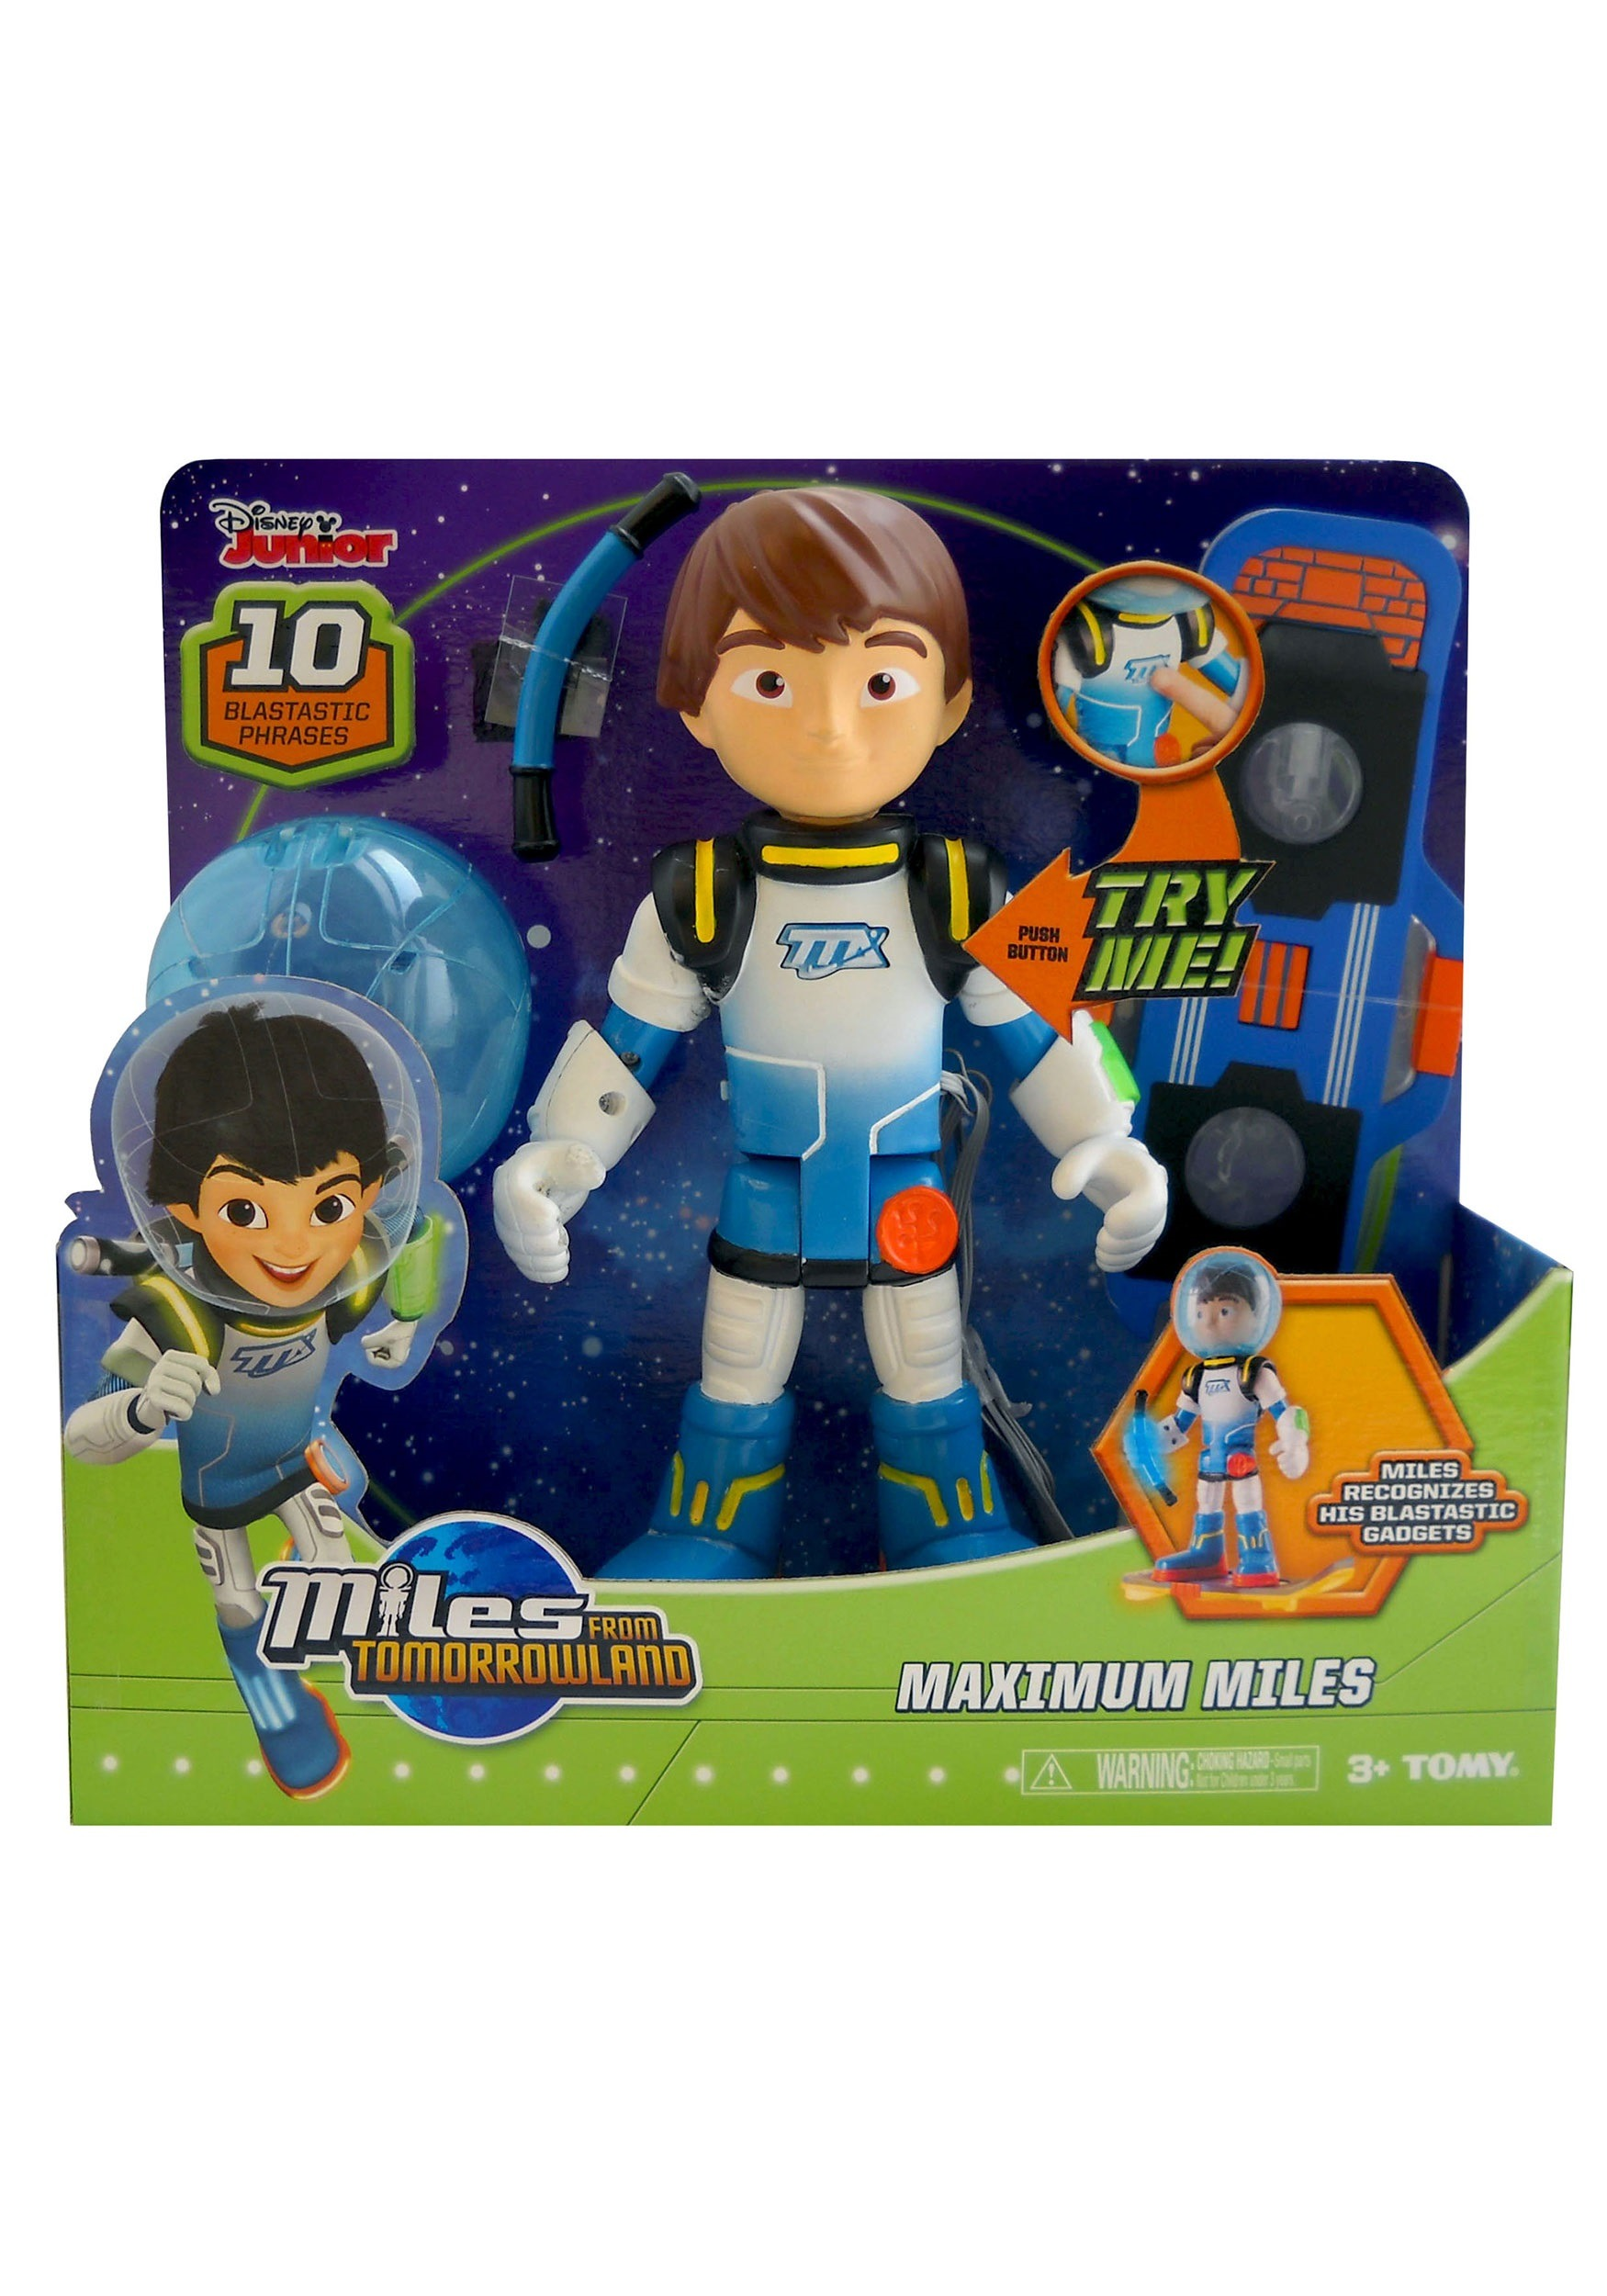 Miles from Tomorrowland Galatech Maximum Miles Figure TOML86150